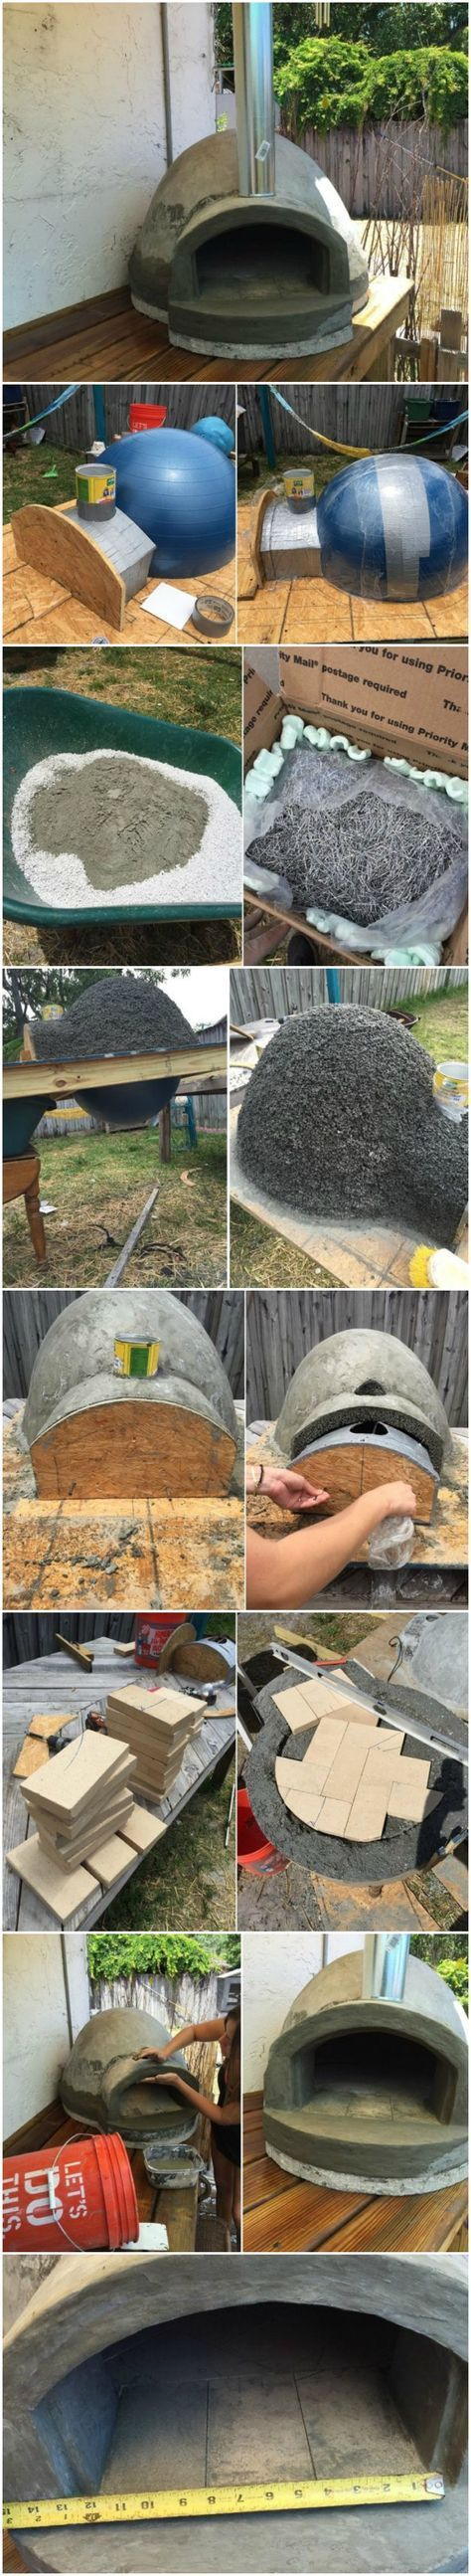 My Shed Plans - Wood fired Pizza Oven made with an exercise ball for $135 - Now You Can Build ANY Shed In A Weekend Even If You've Zero Woodworking Experience!